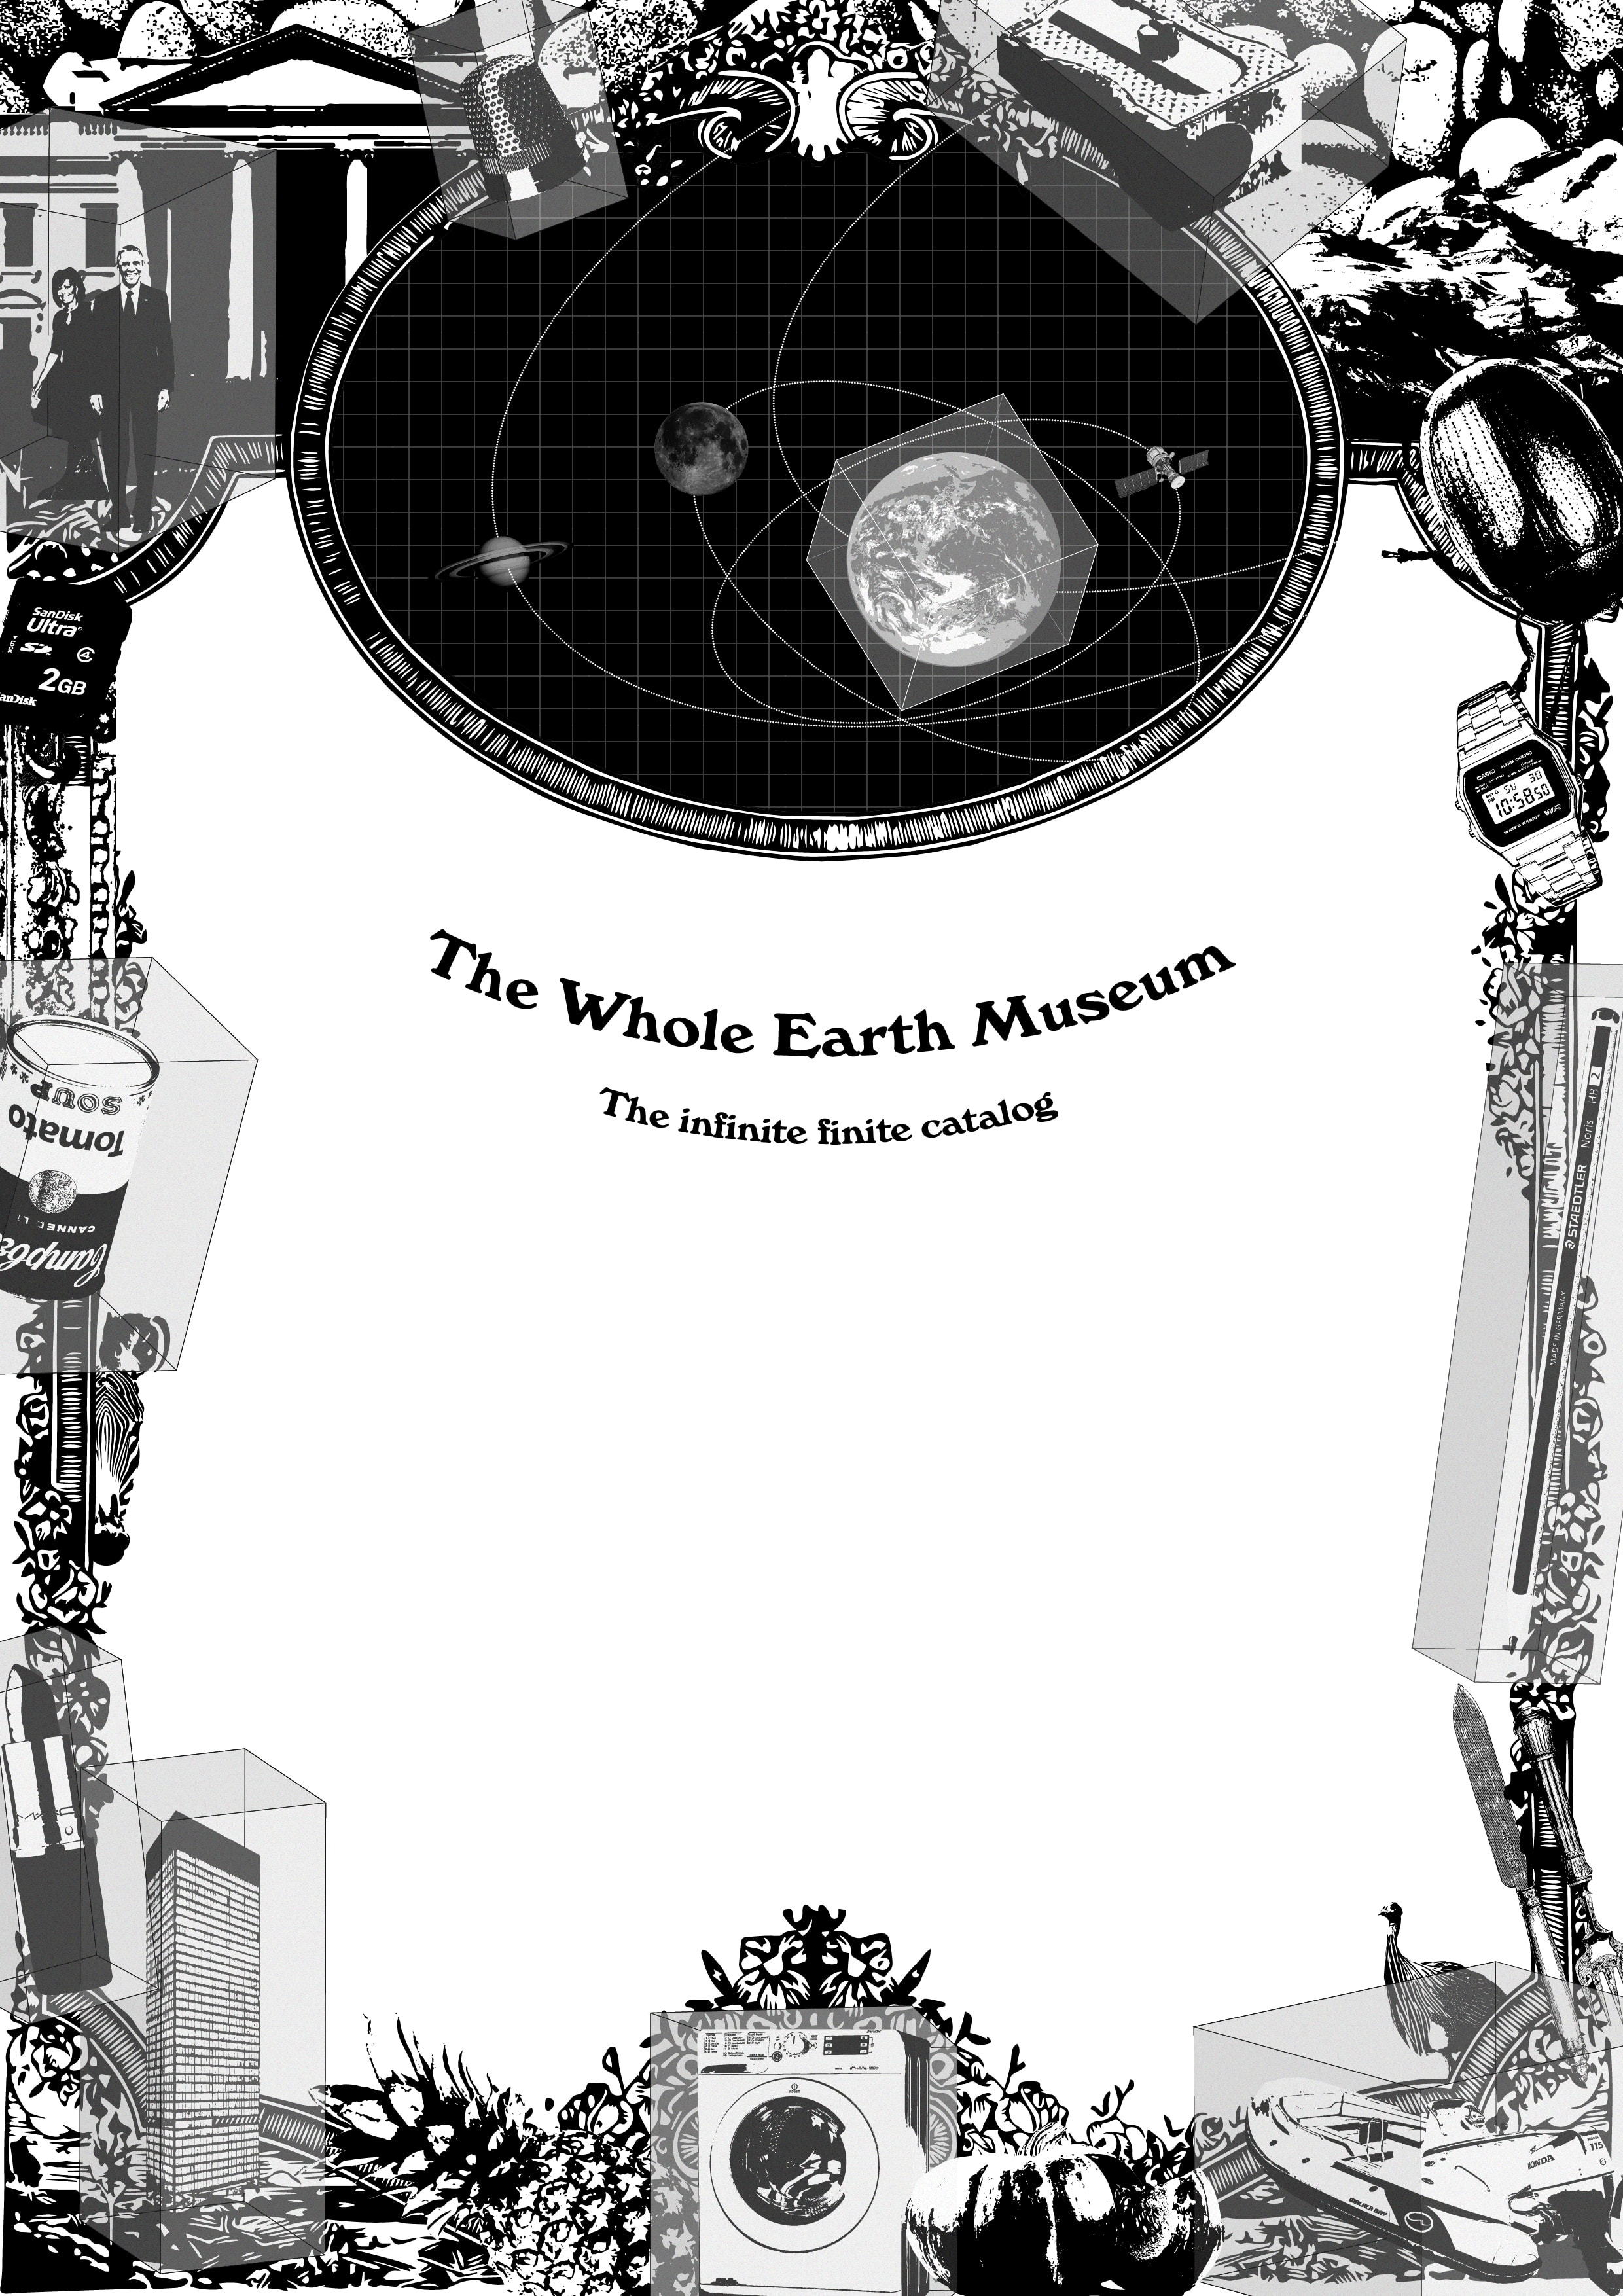 The Whole Earth Museum